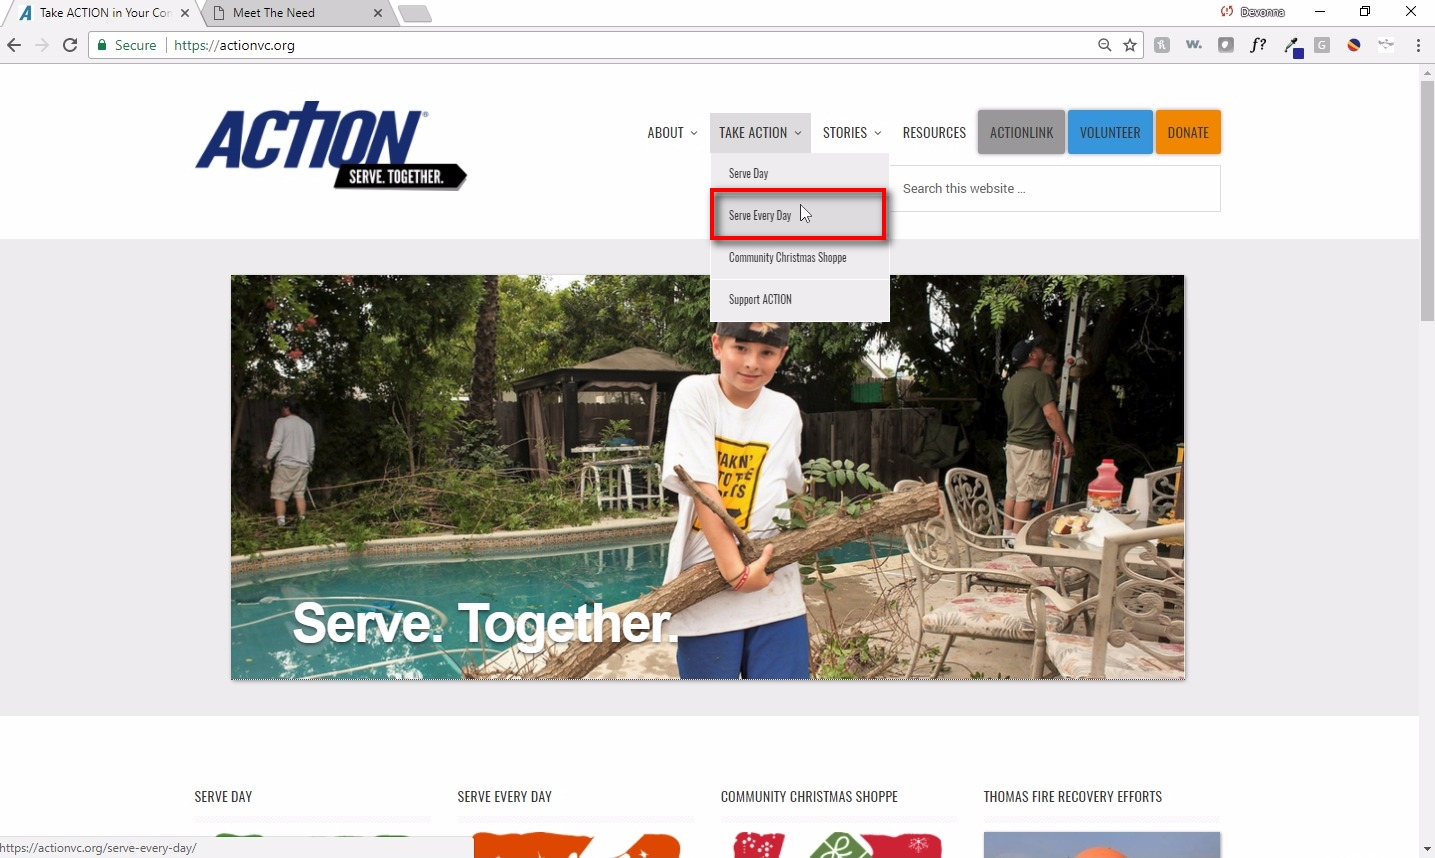 Click on Serve Every Day ;You can find your project on our website, ACTIONvc.org, on our Serve Every Day page.